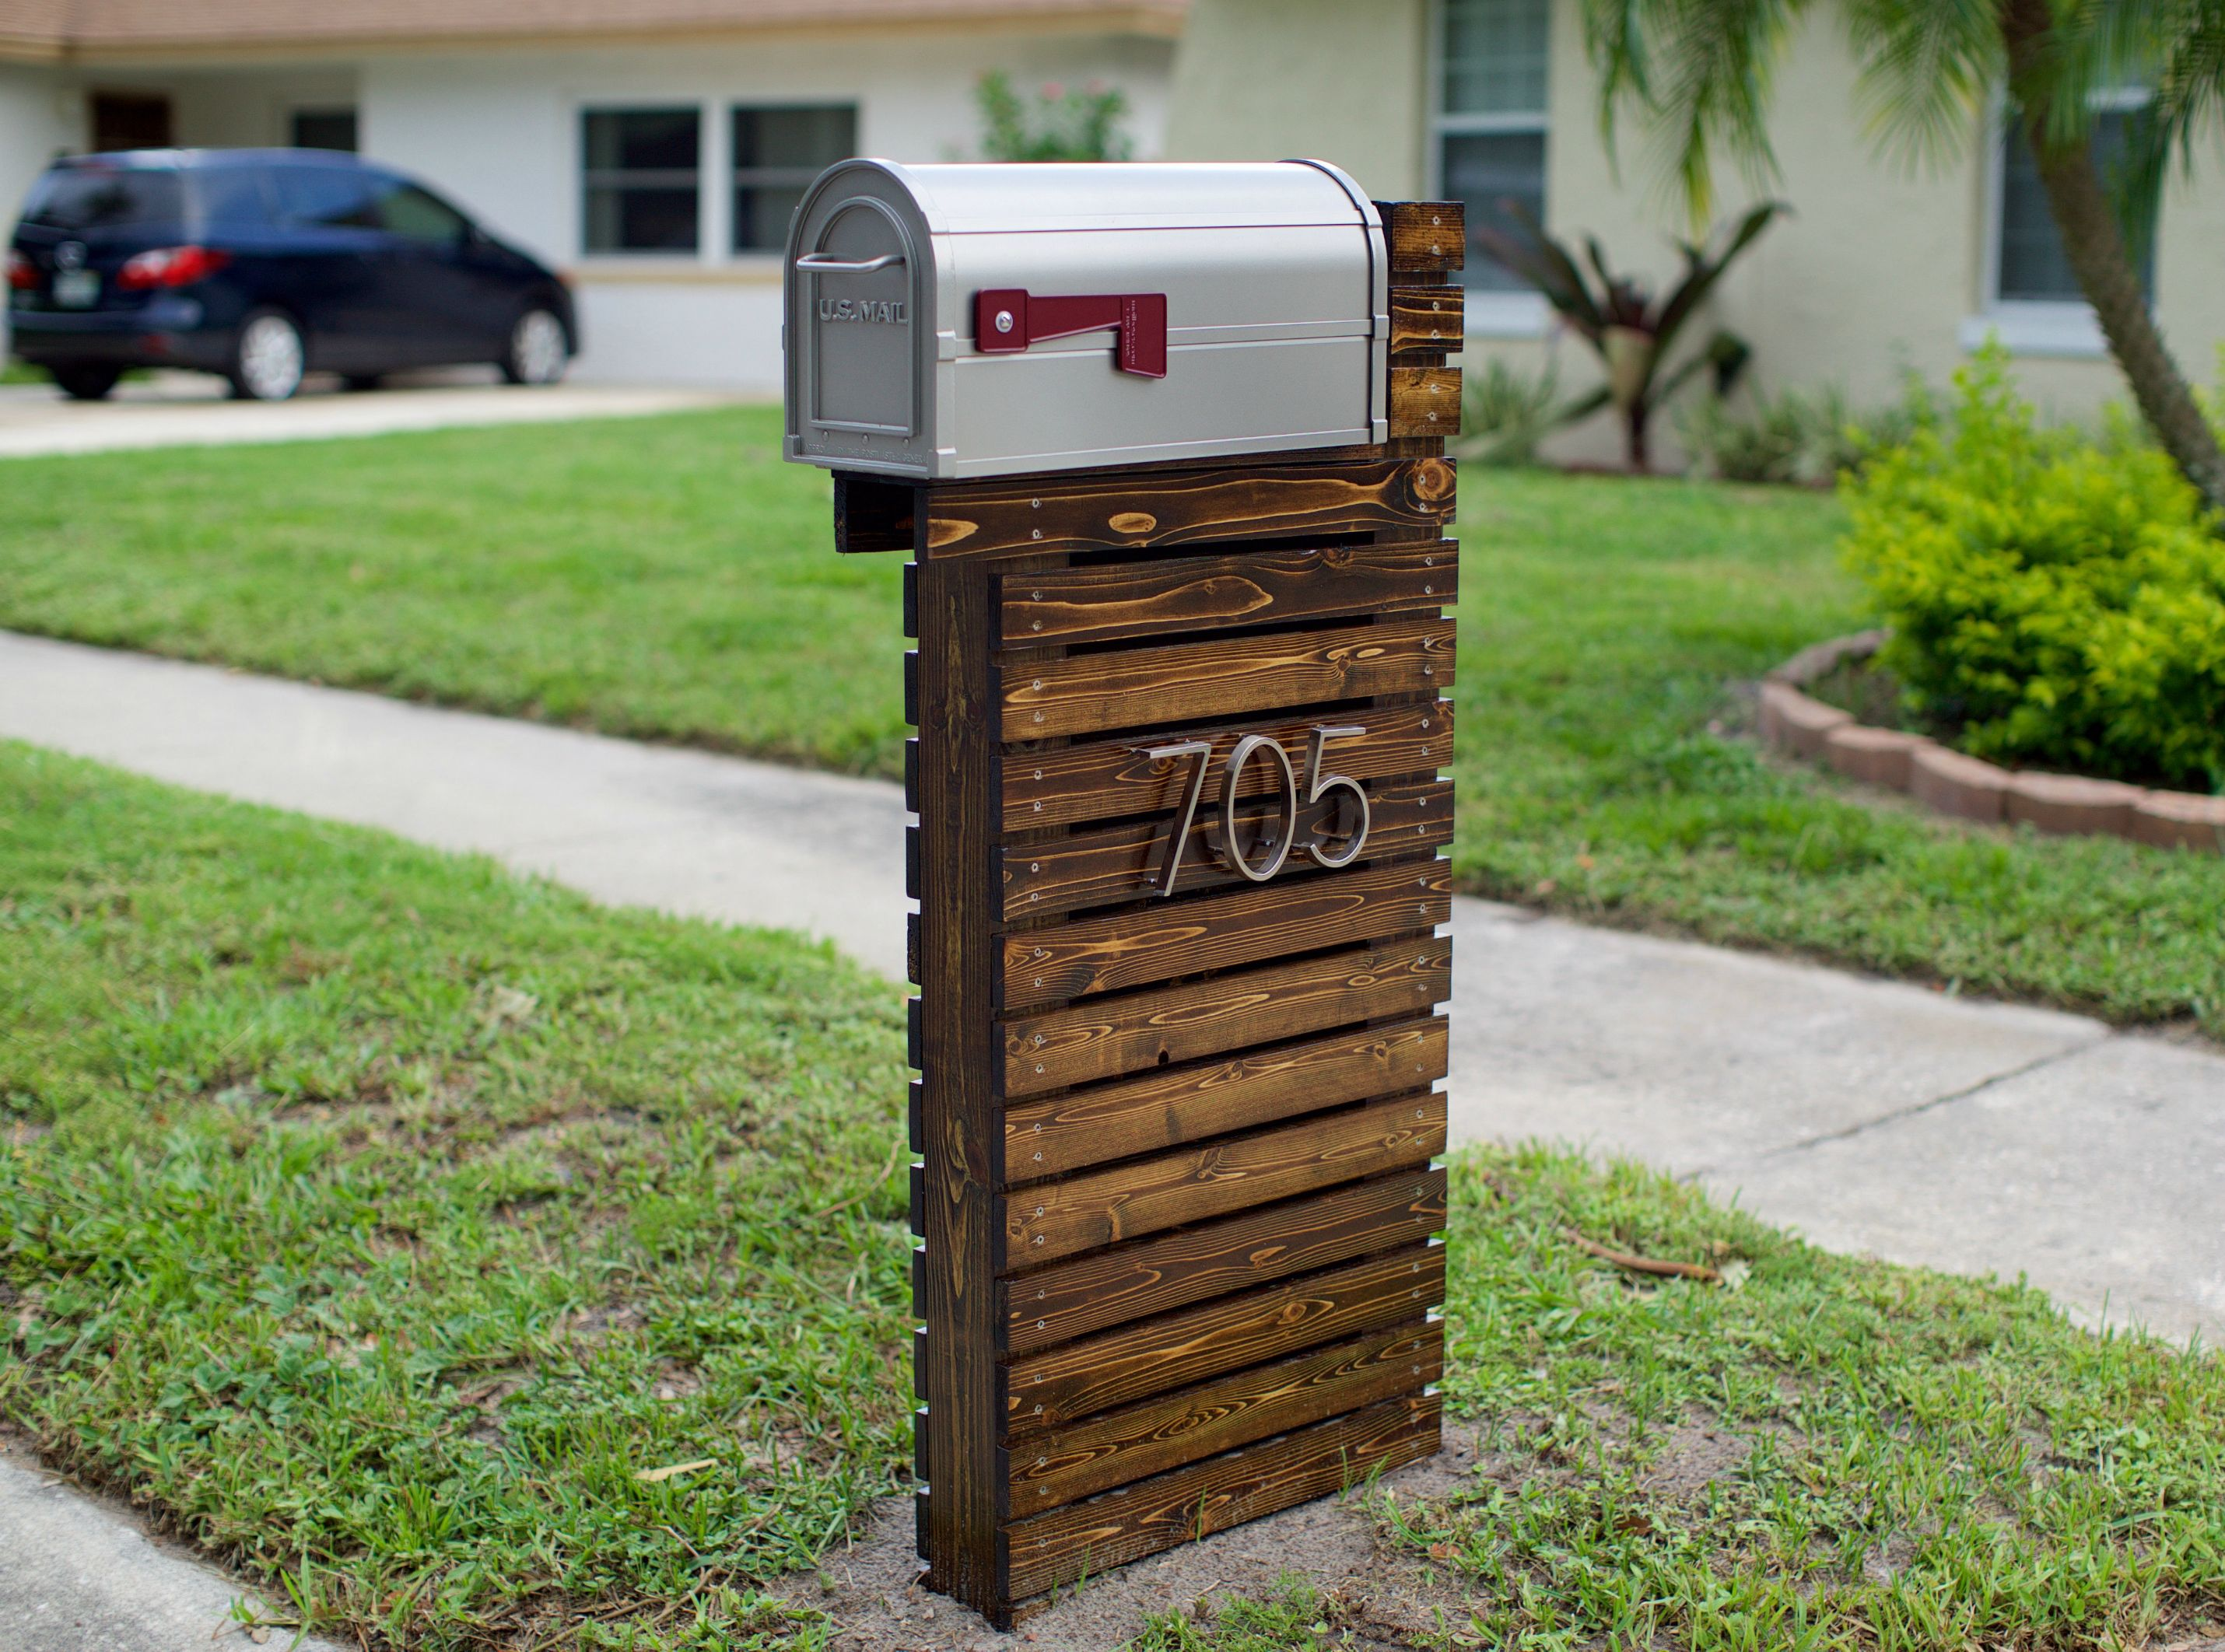 Tips on looking after your mailbox